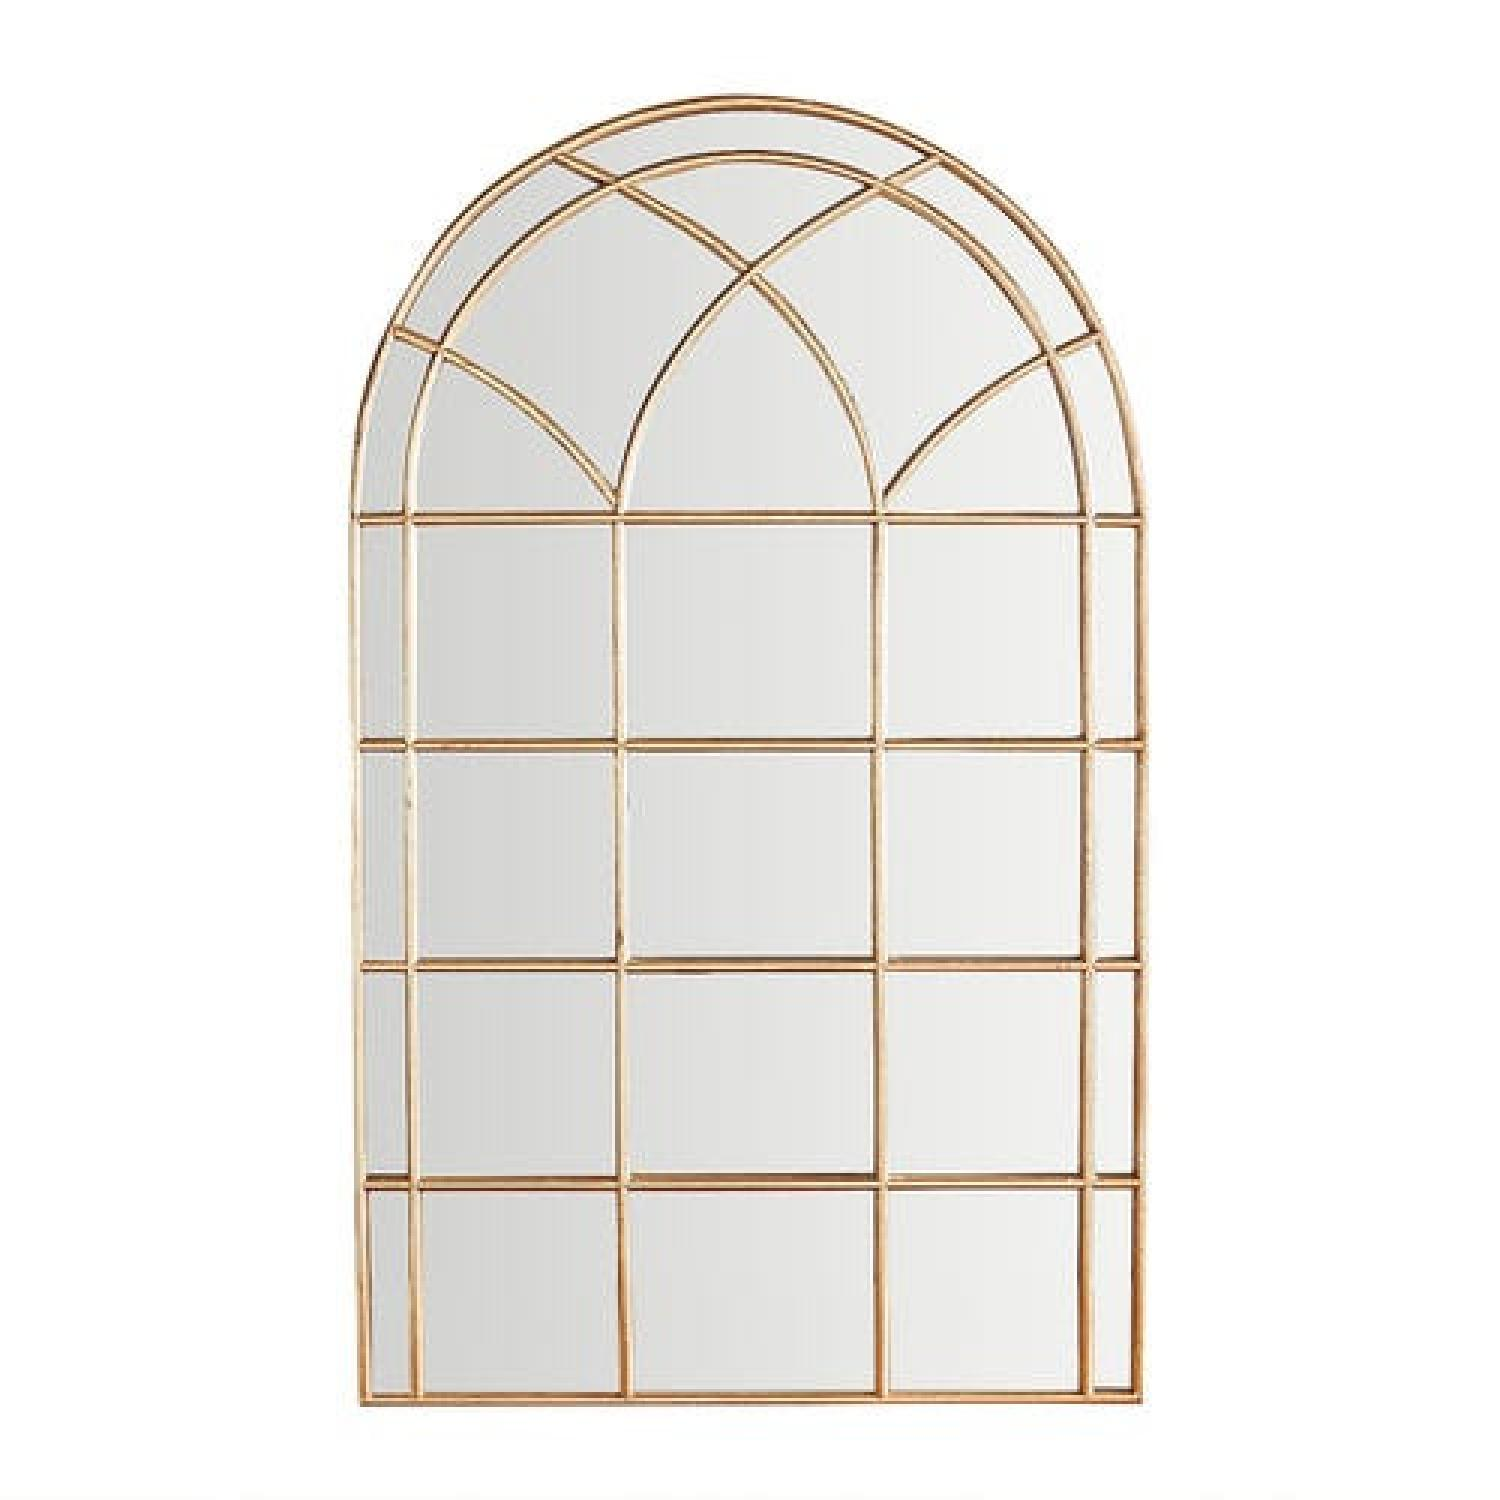 Pier 1 Imports Gold Arch Mirrors - image-4